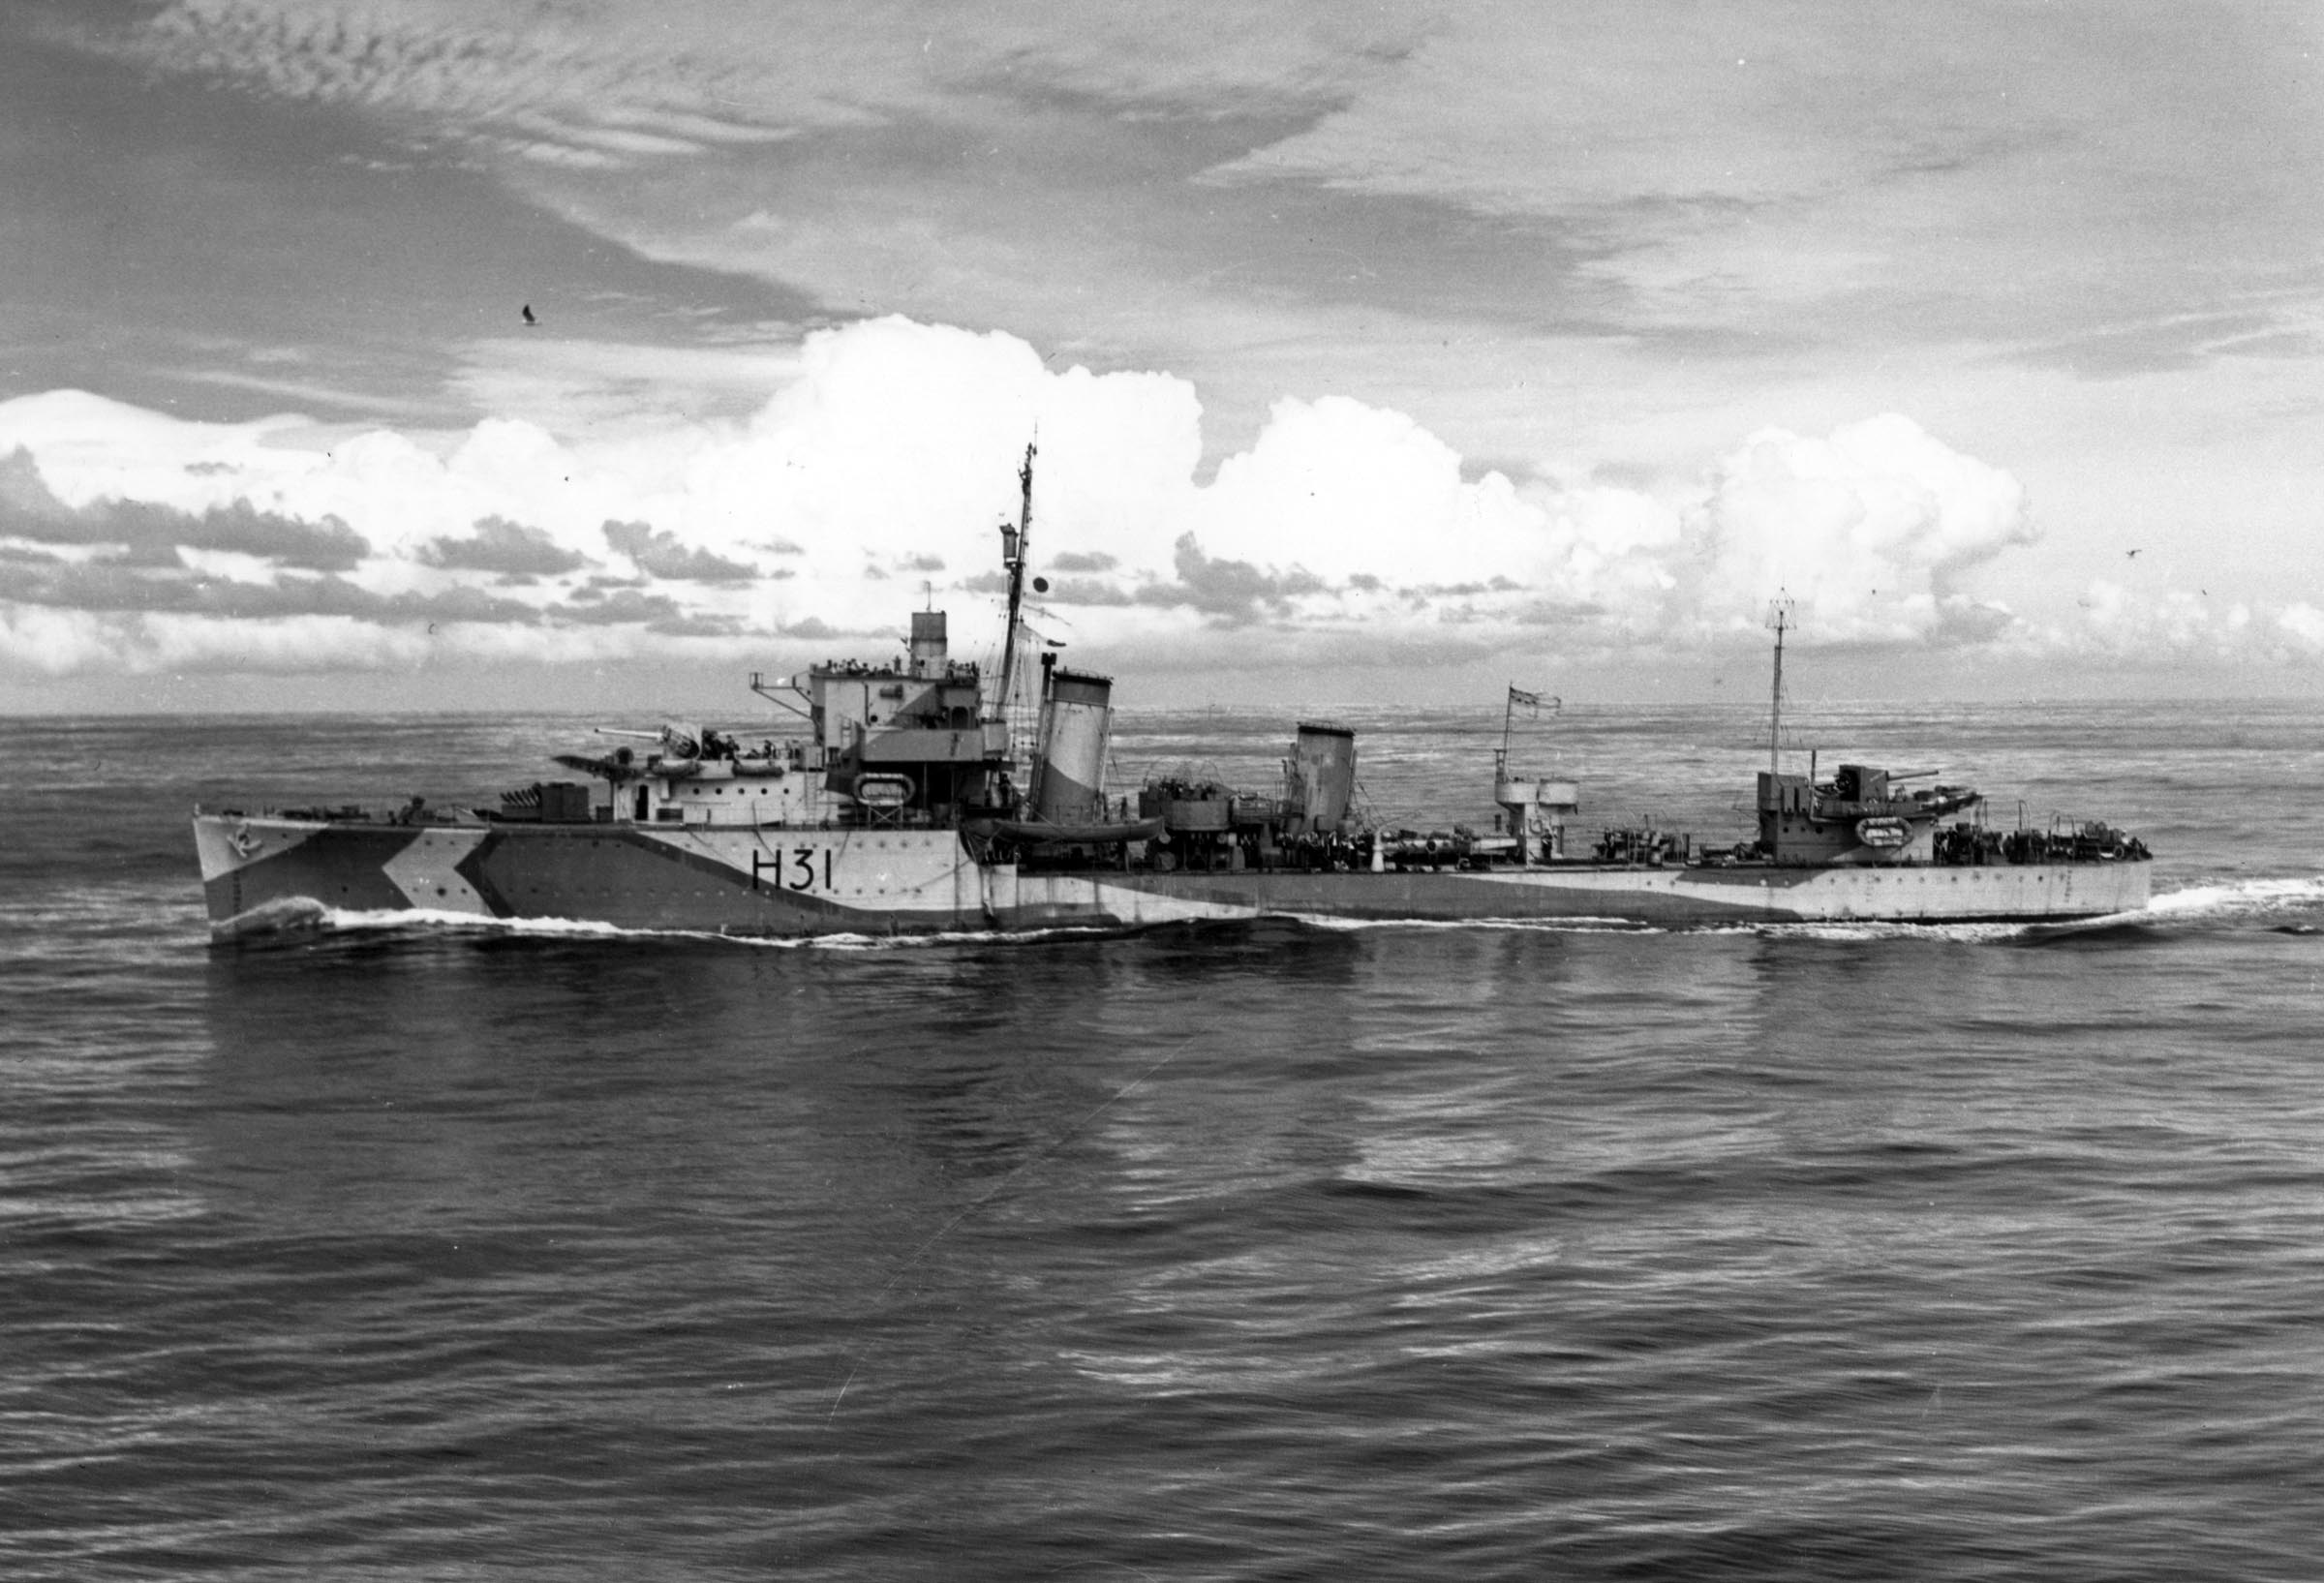 HMCS OTTAWA (2nd)